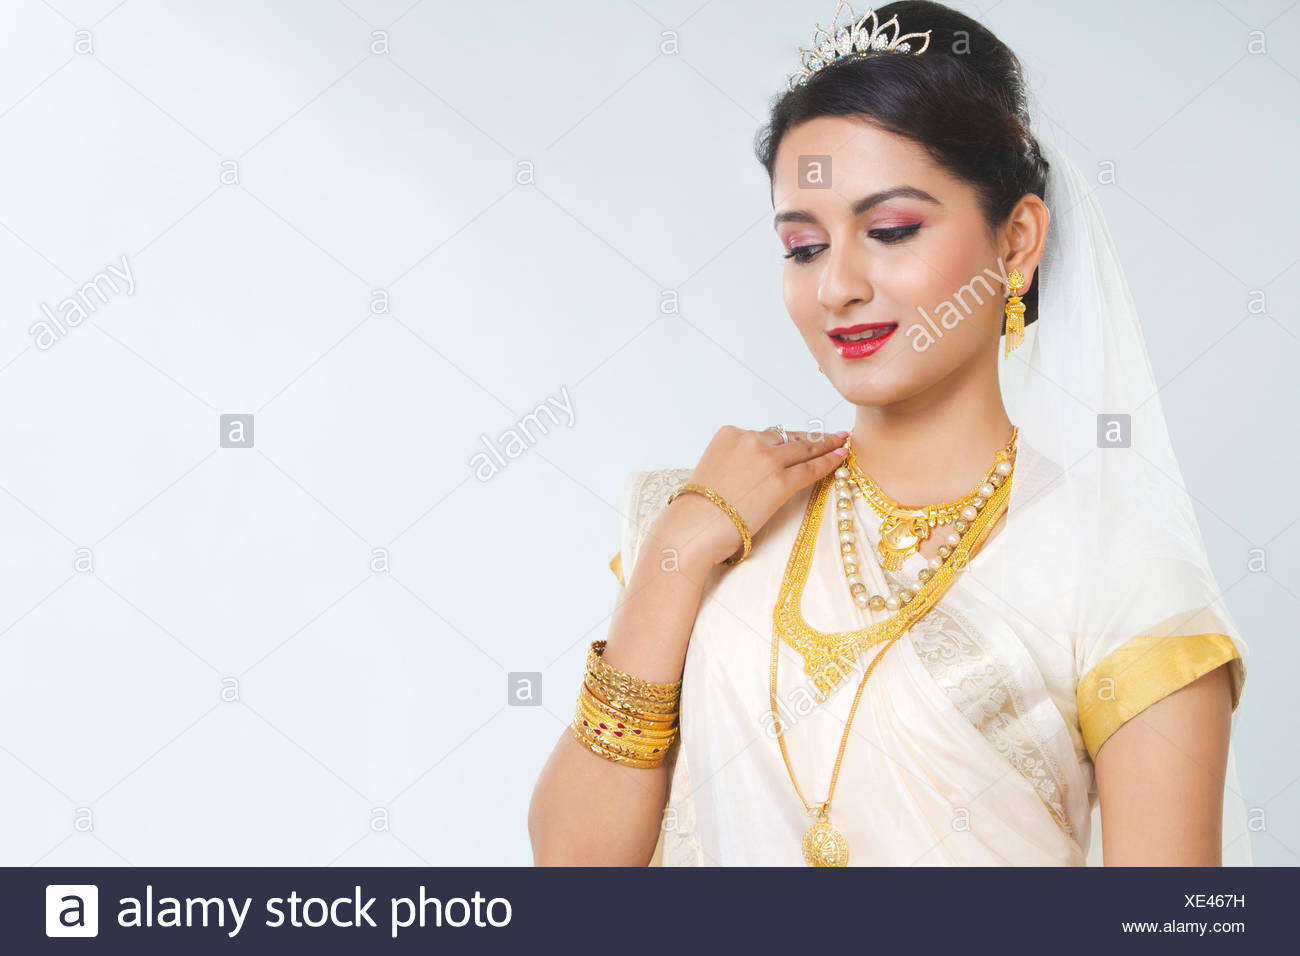 South Indian Bride Stock Photos & South Indian Bride Stock Images ...